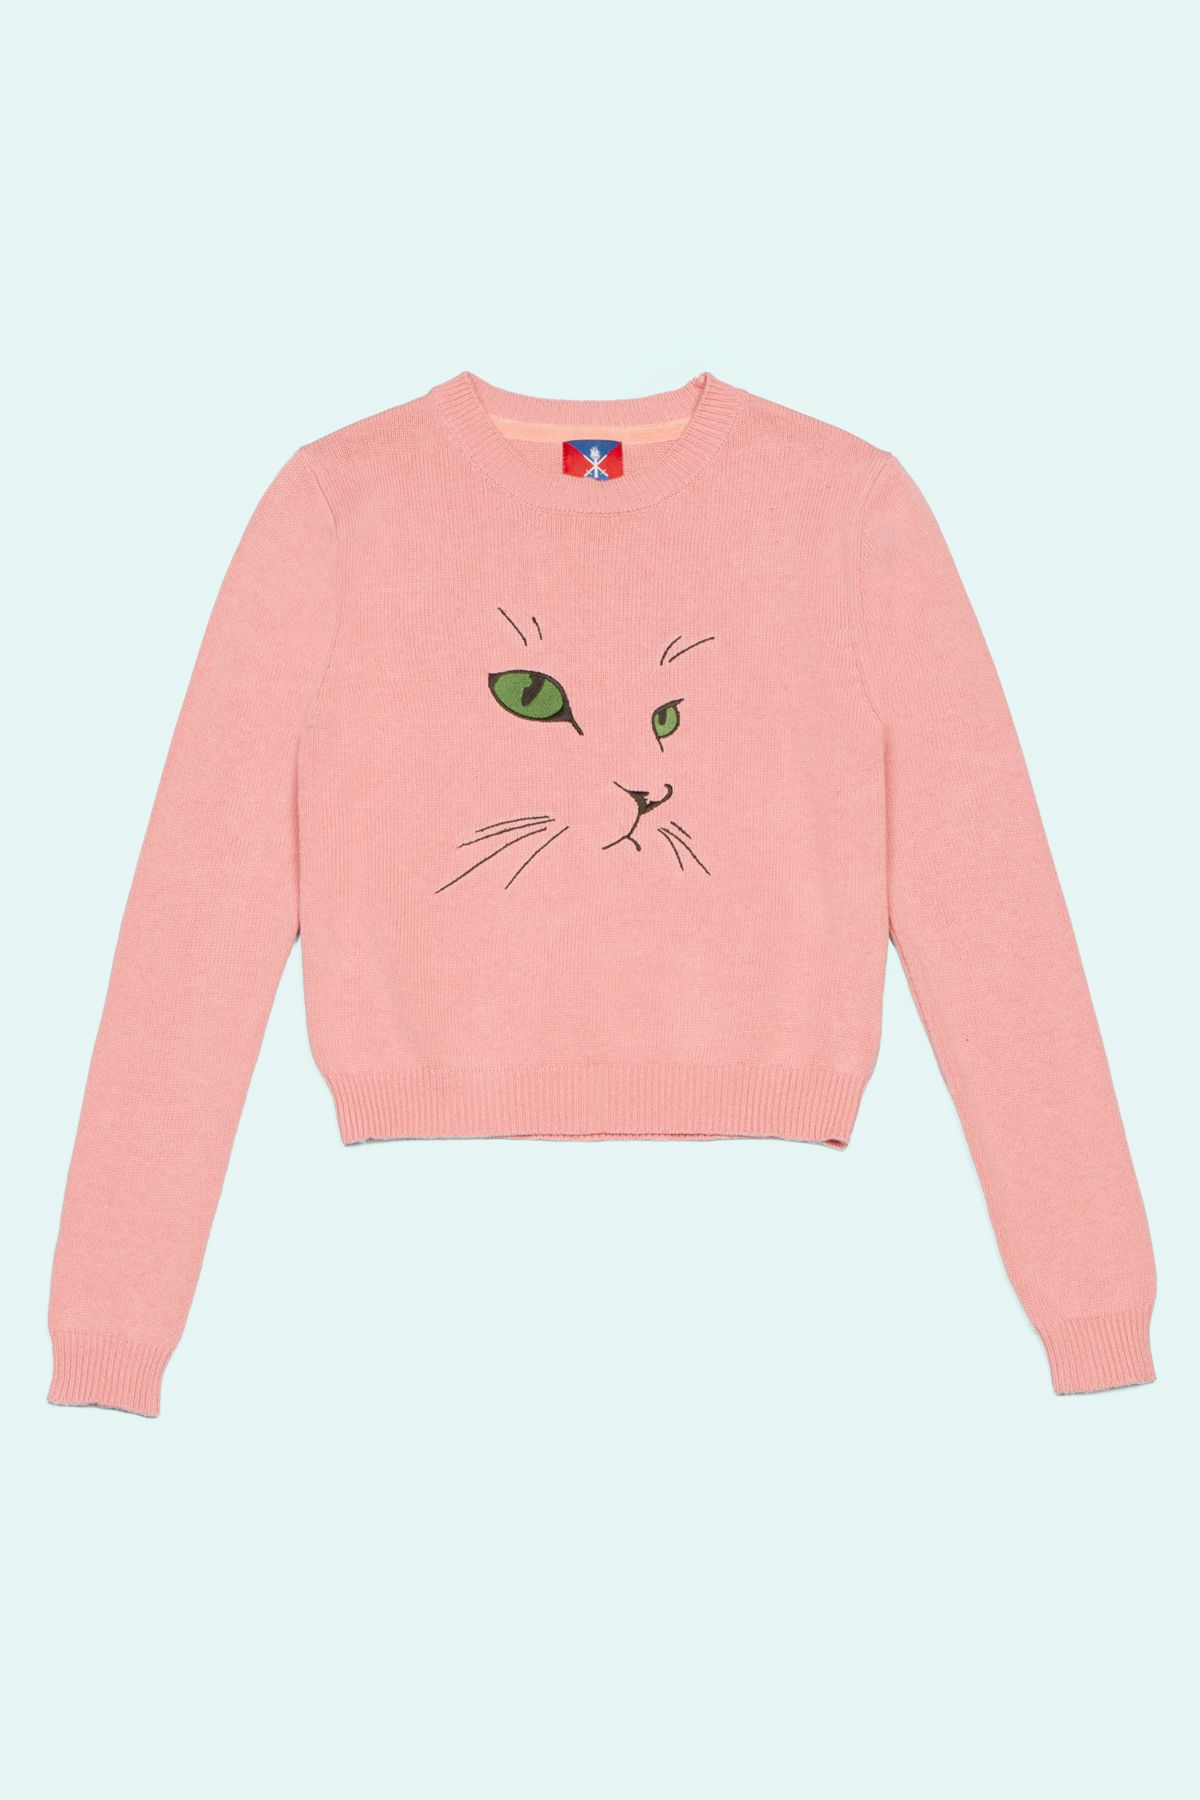 This is also a jumper I MUST have.